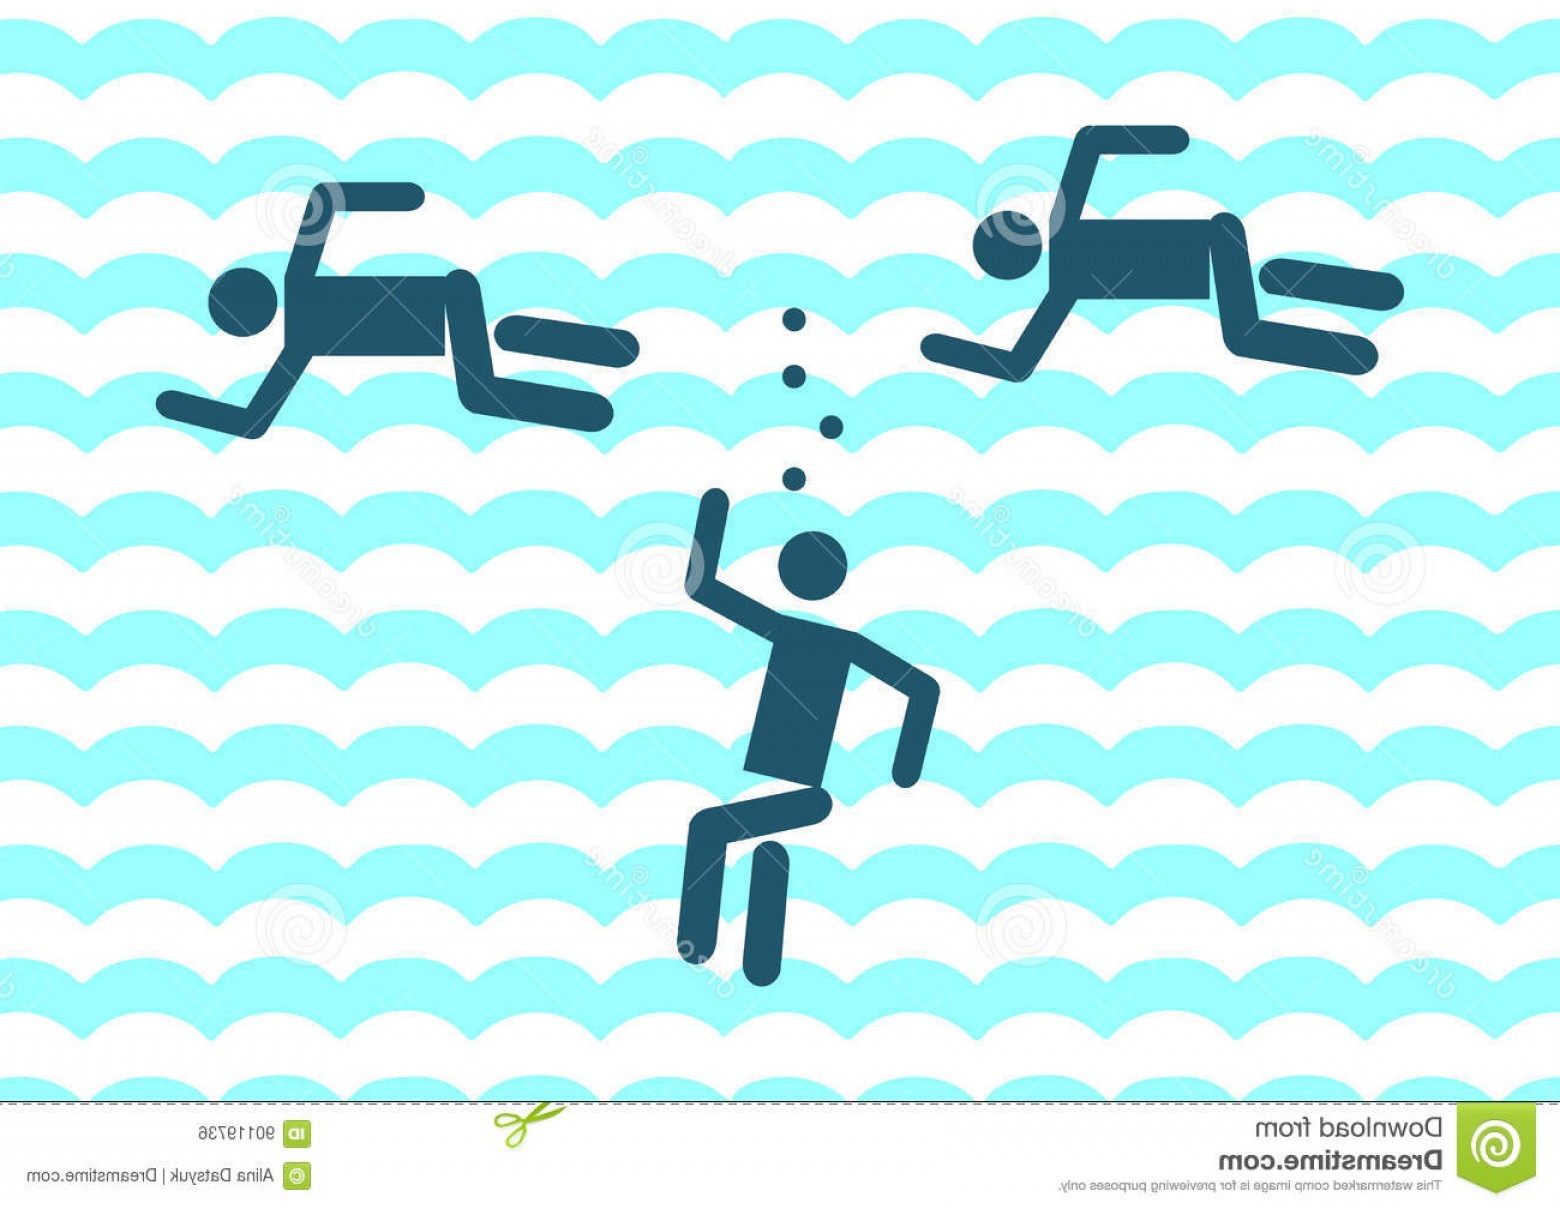 Man Drowning Vector: Stock Illustration Drowning Man Icon Illustration Sign Symbol Vector Pictogram Pool Image